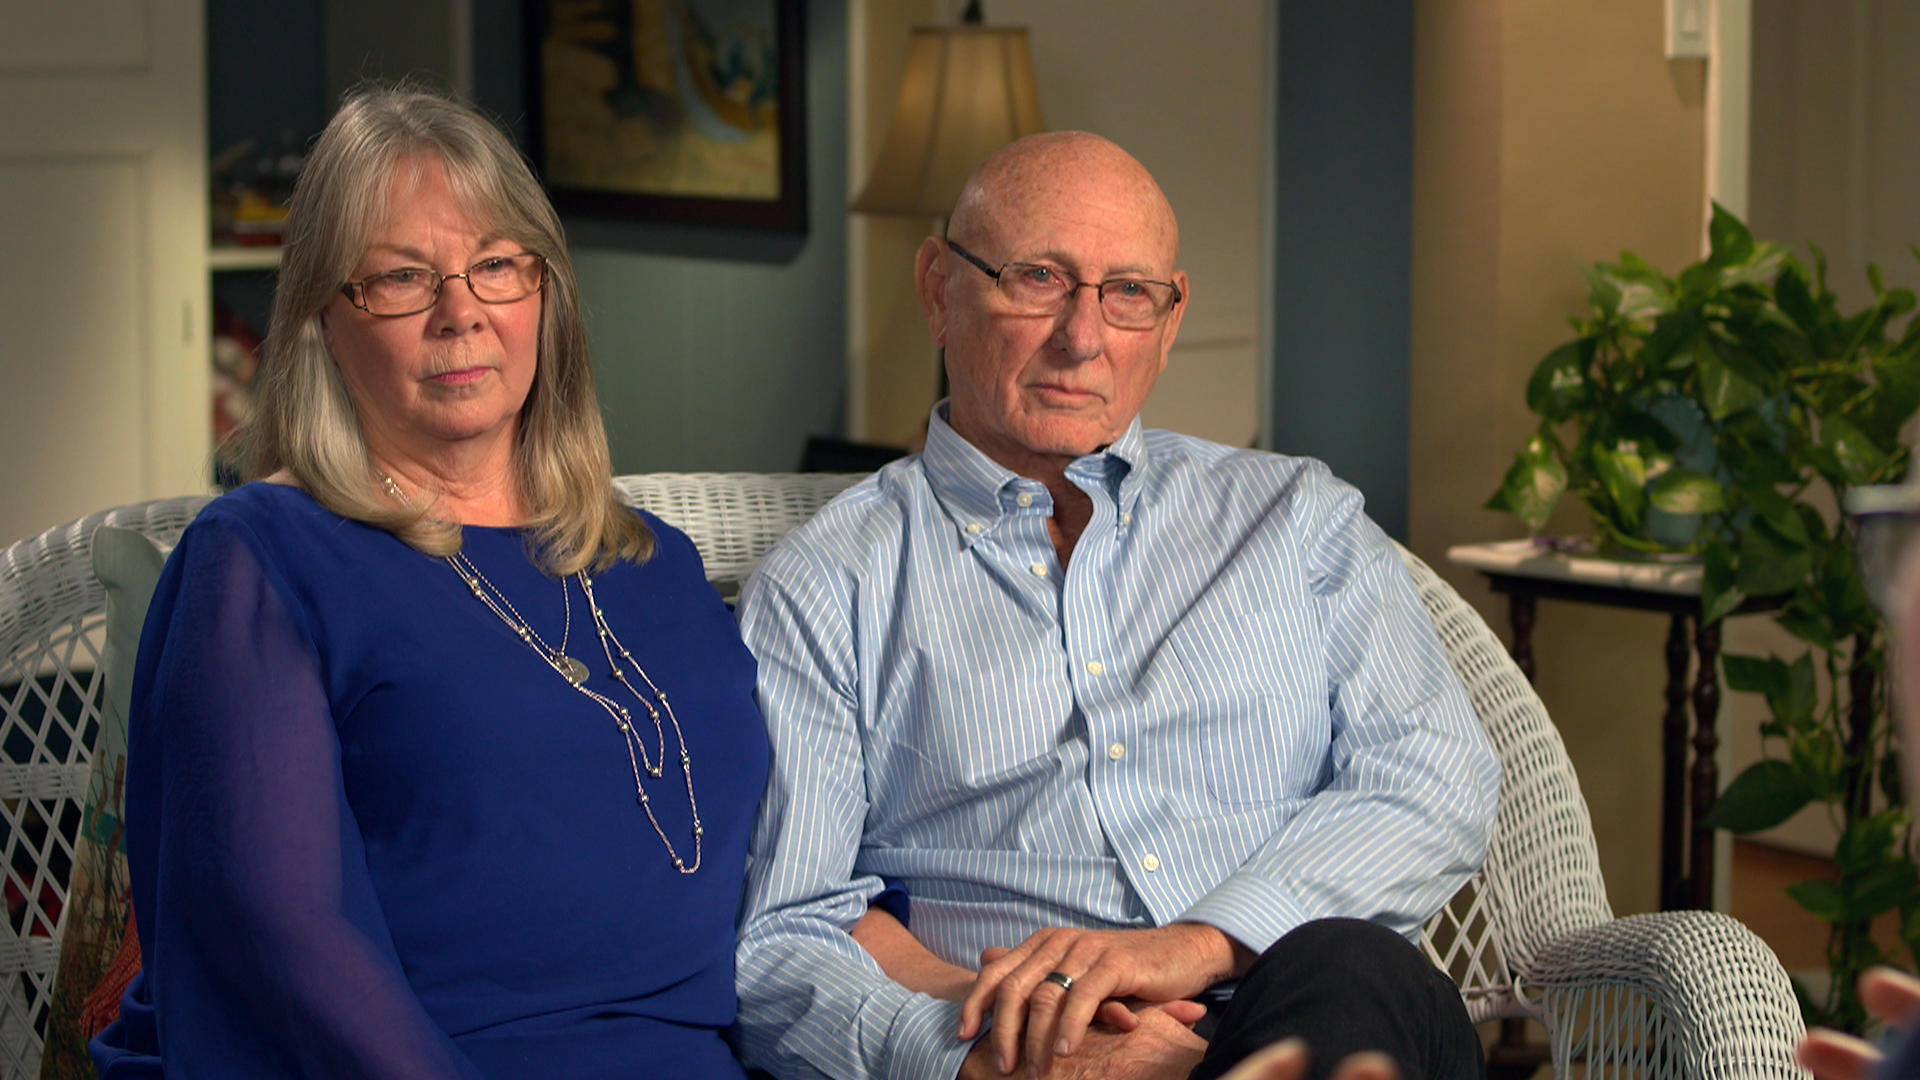 Parents of a 2012 Aurora, Colorado, shooting victim travel